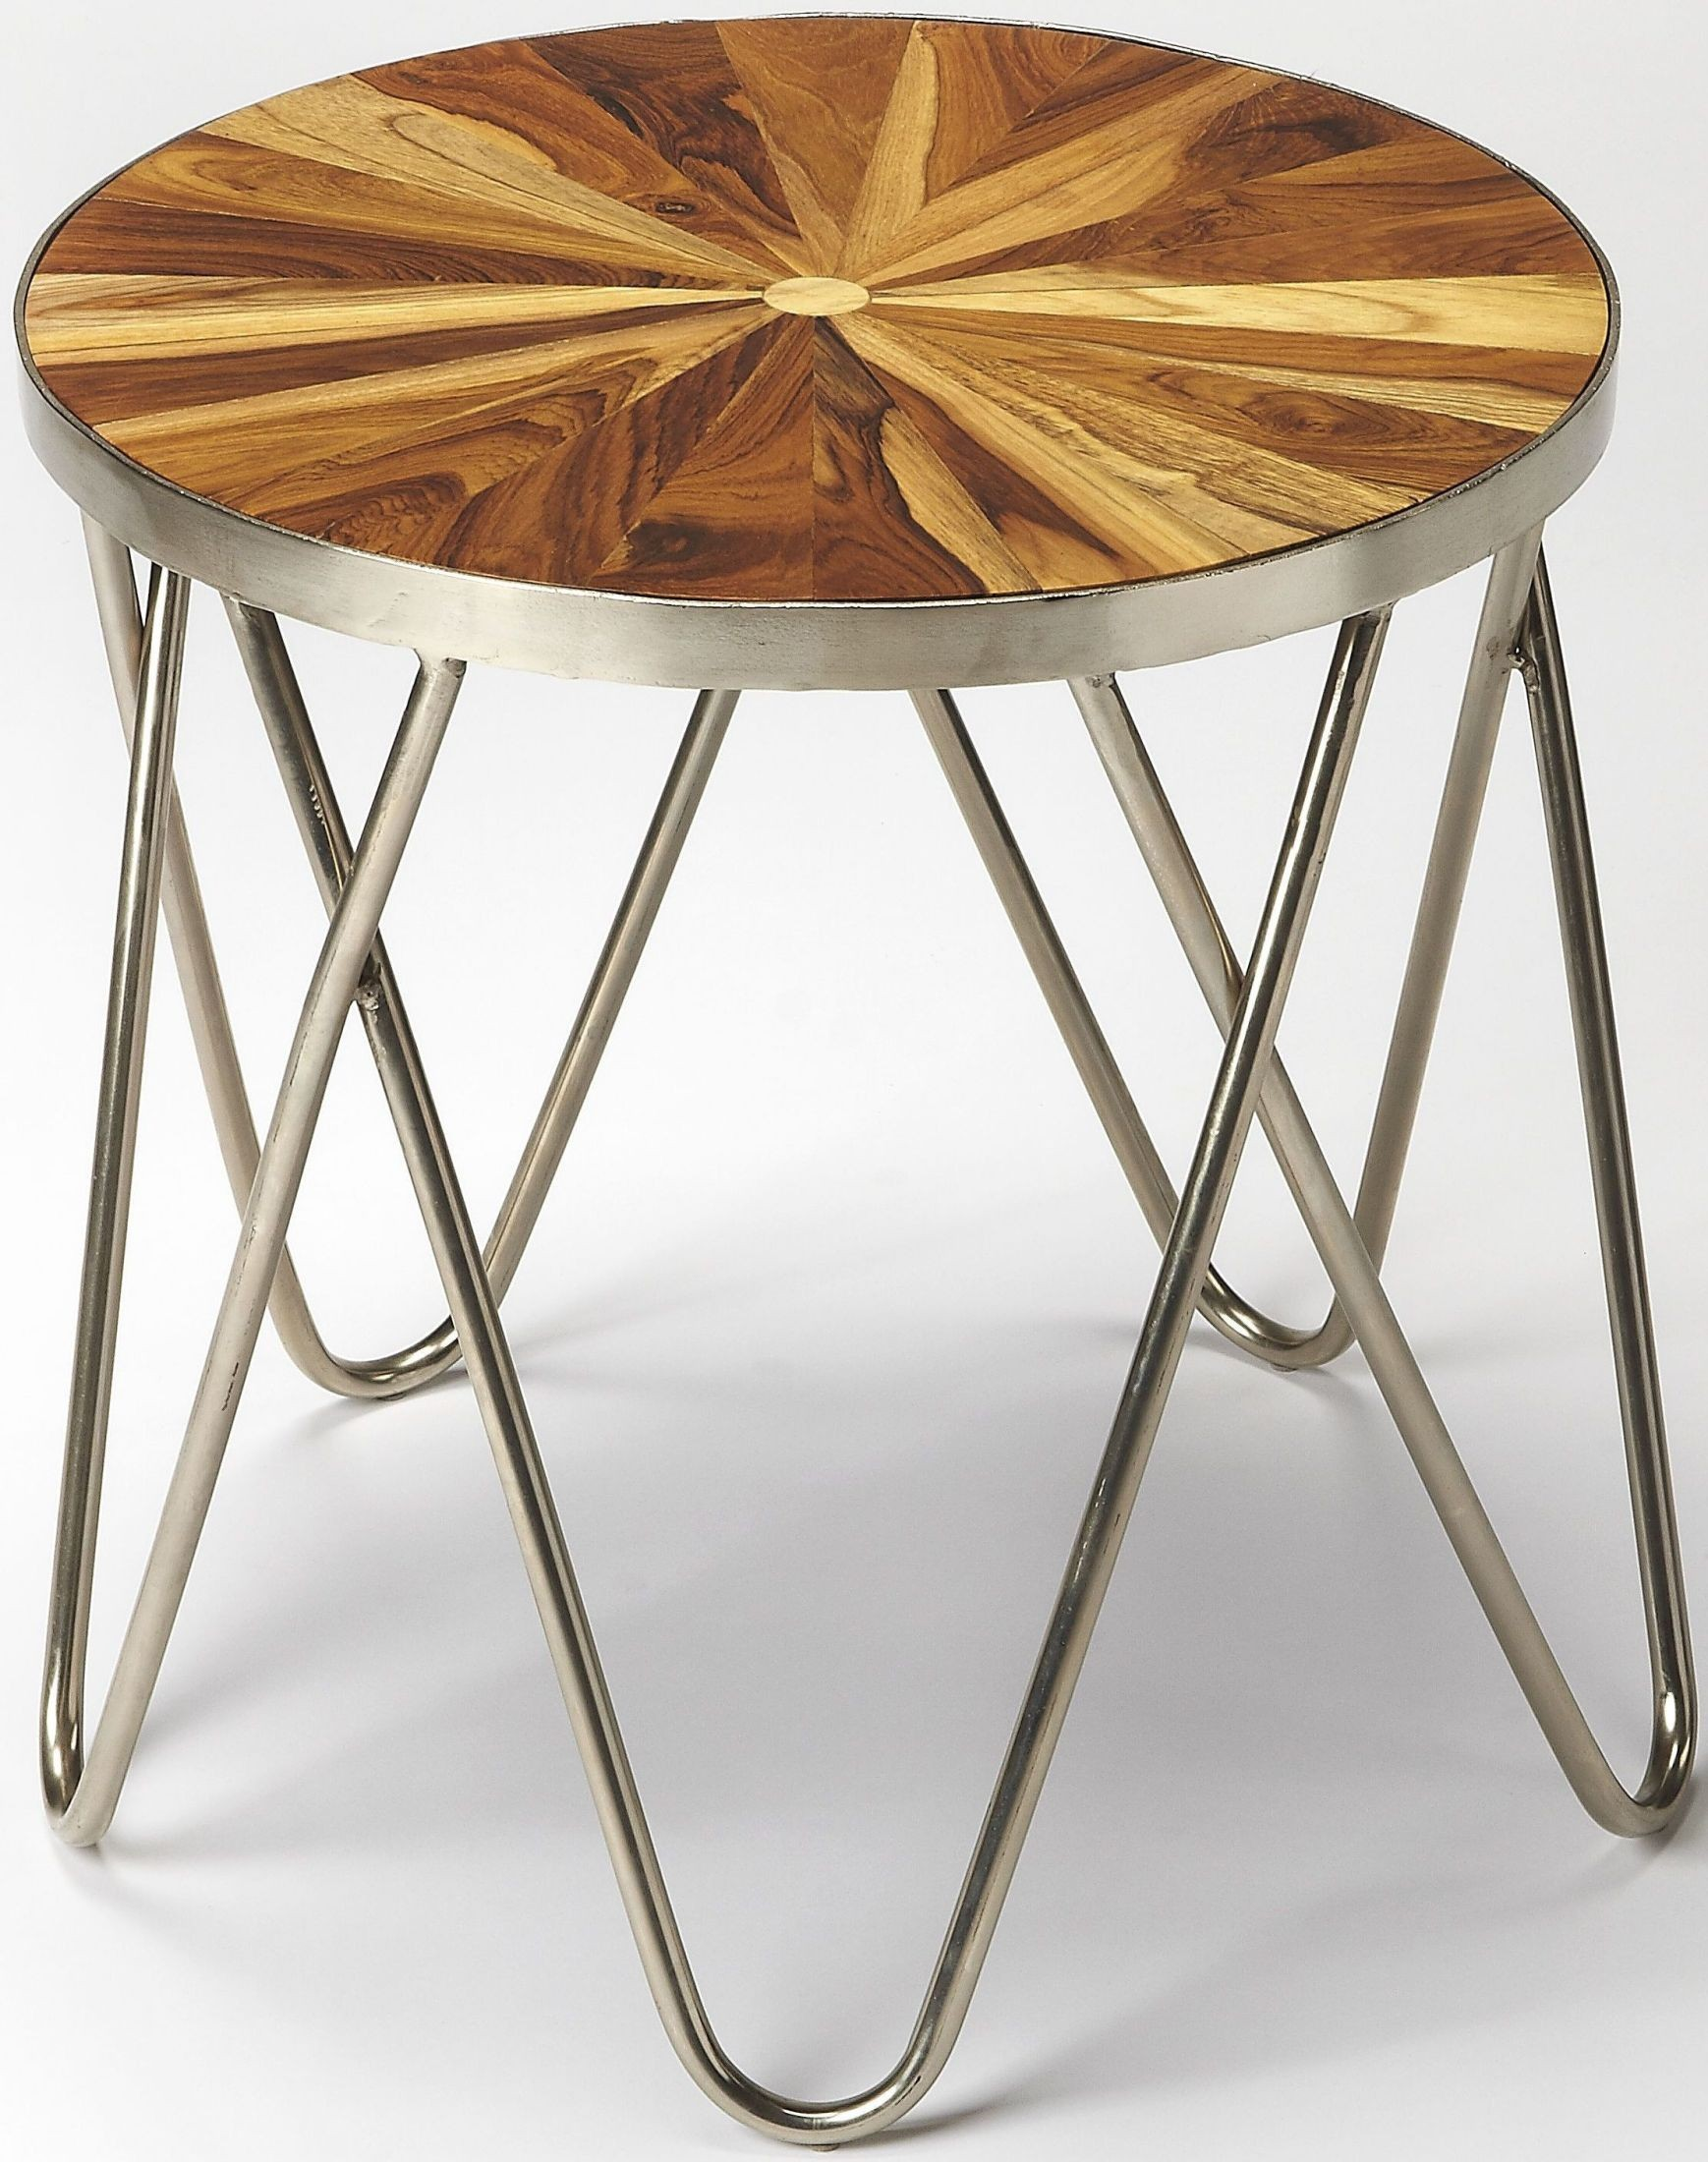 Butler loft hairpin iron and wood end table